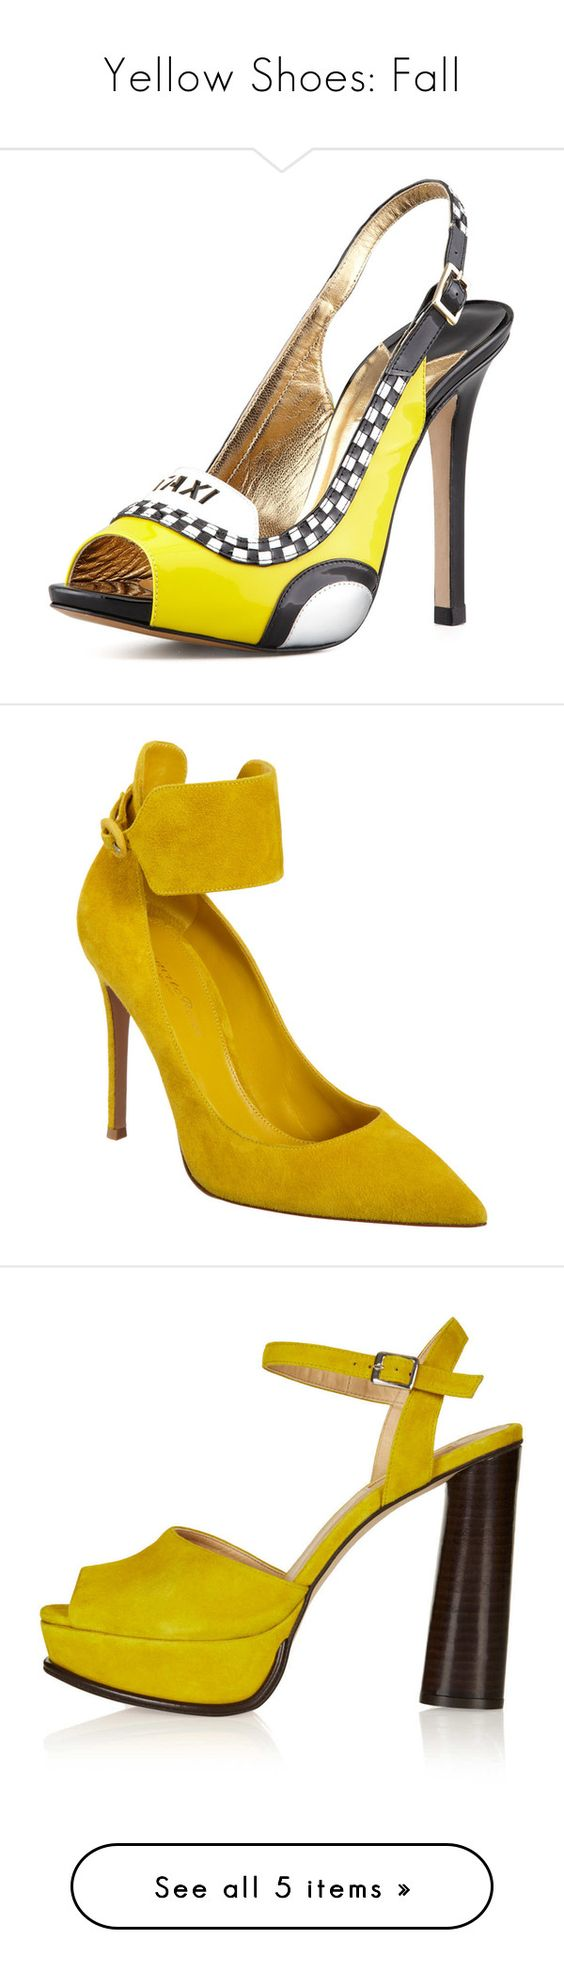 """Yellow Shoes: Fall"" by mathilda-moo ❤ liked on Polyvore featuring J.Crew, Prada, Comme des Garçons, Maje, Grey Ant, Karen Millen, Jason, Thierry, Masion and shoes"